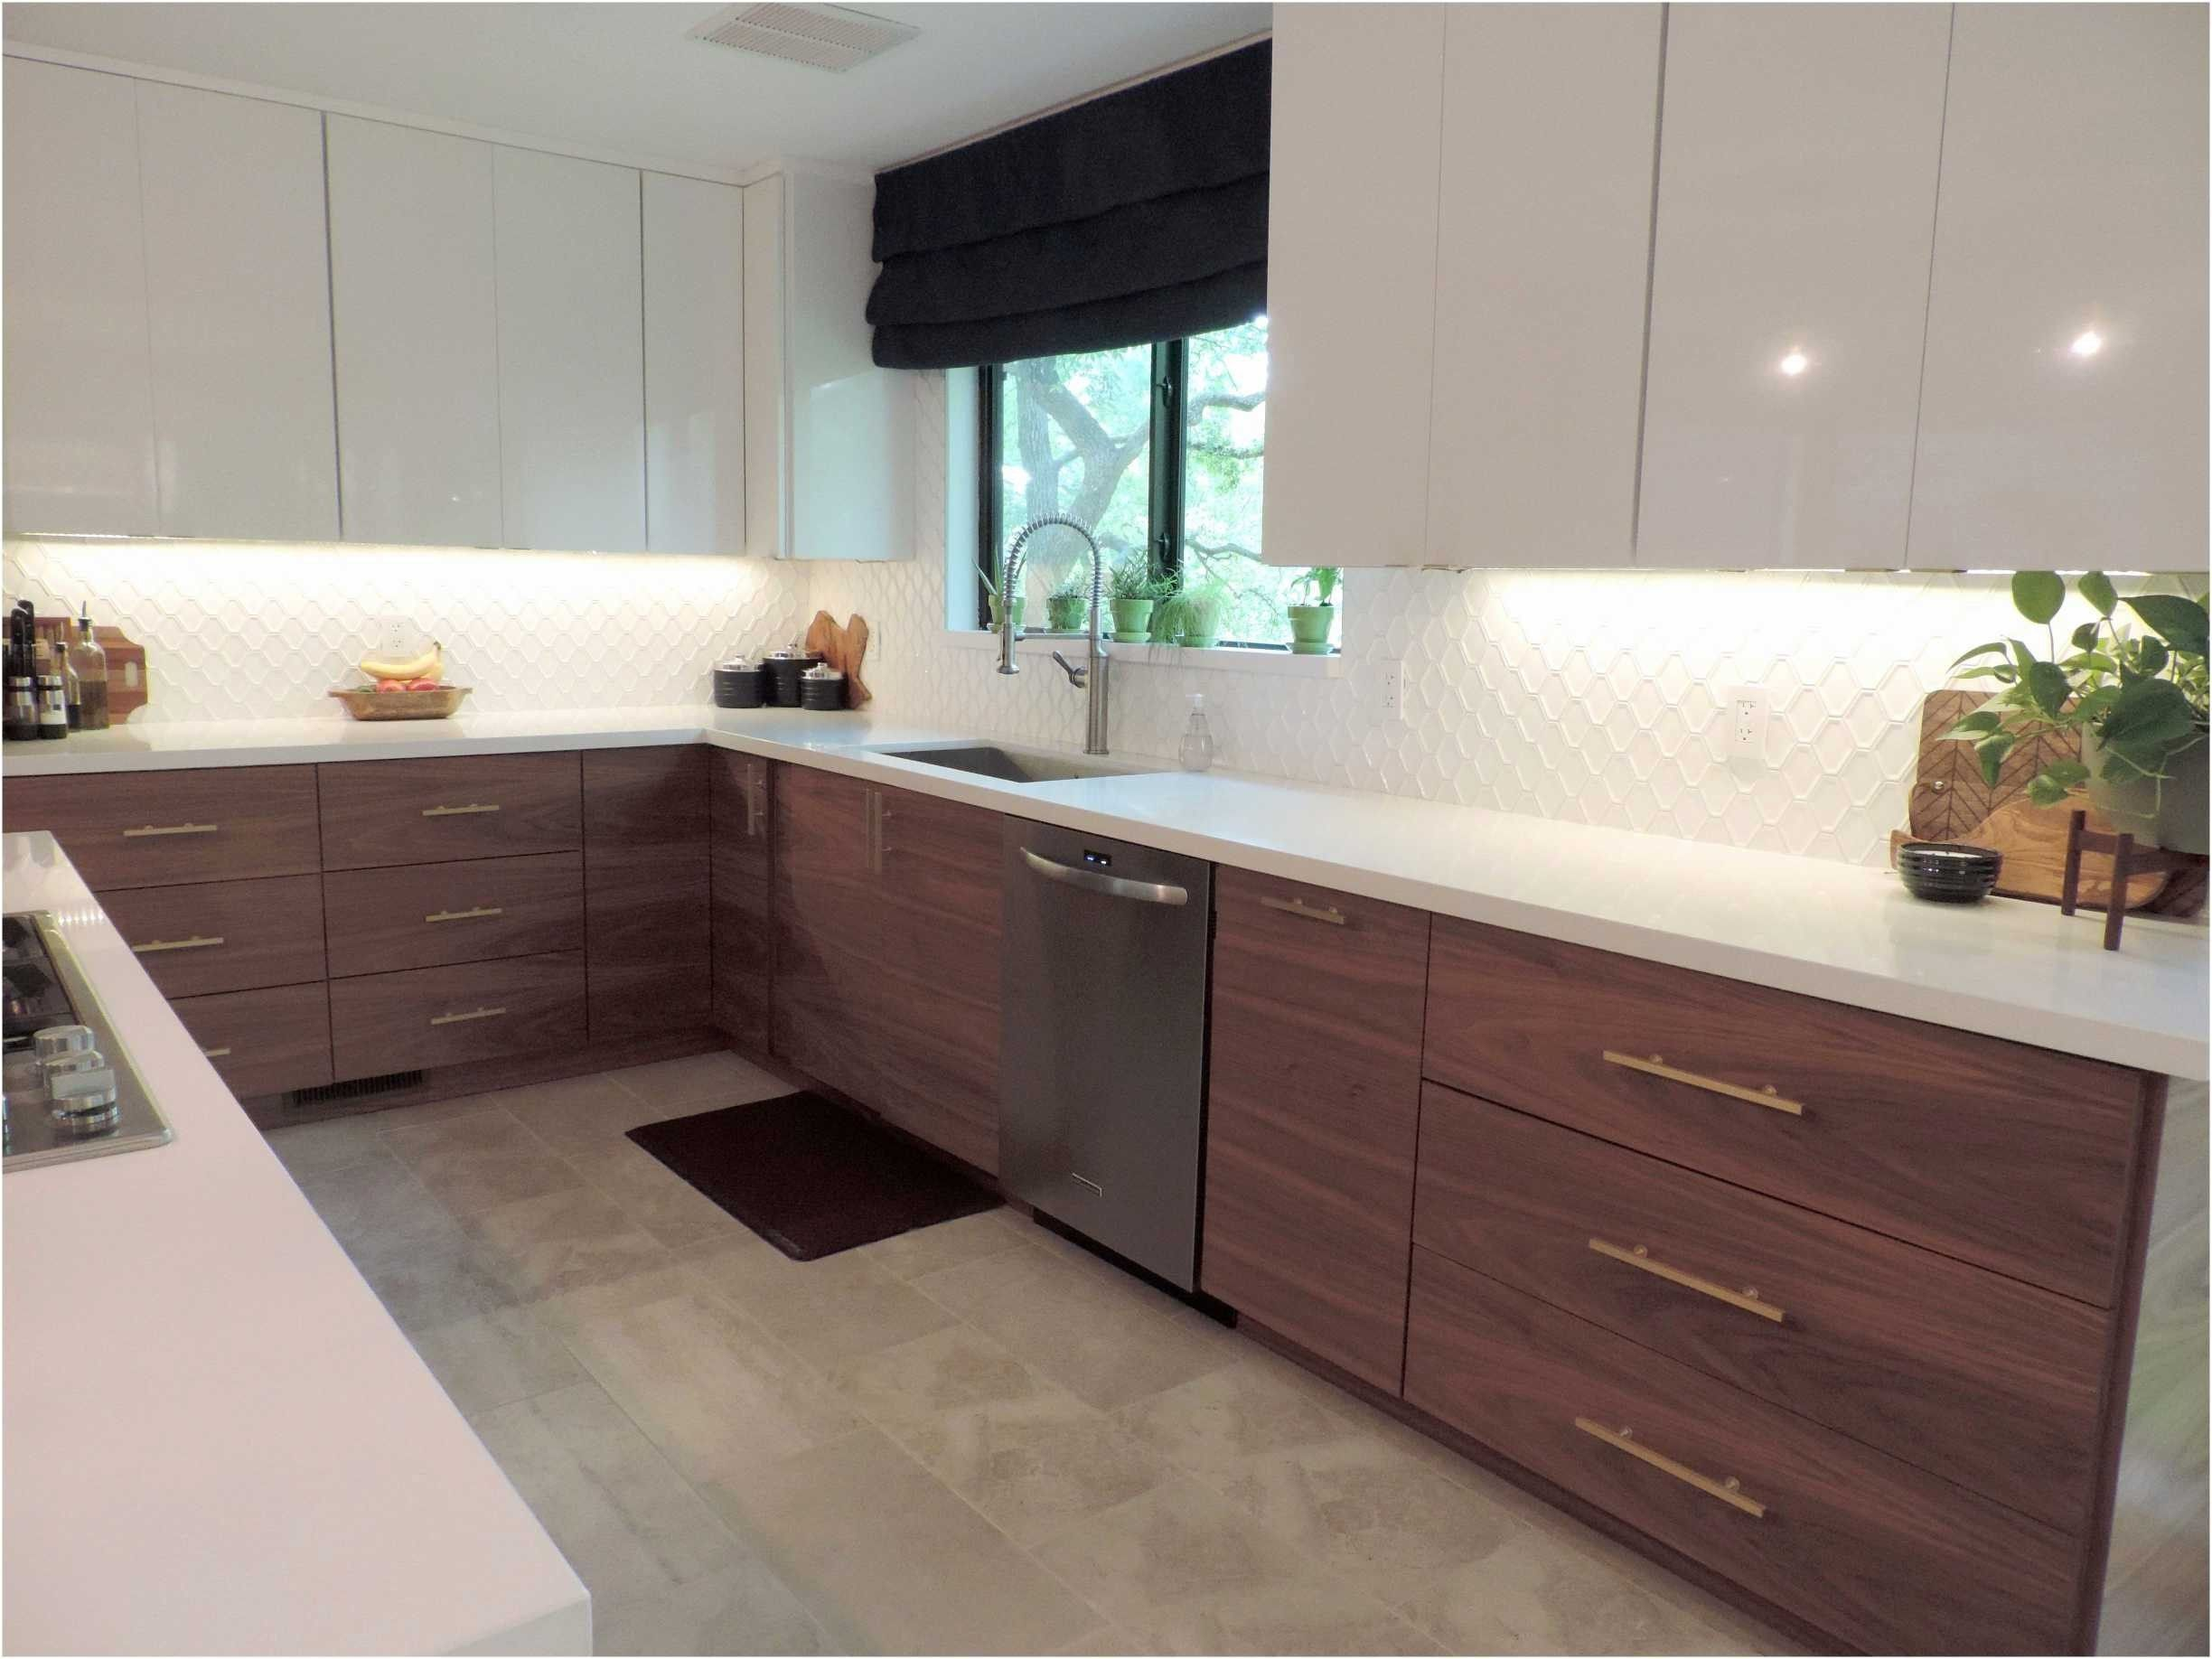 Luxury Facade Cuisine Ikea Faktum Kitchen Remodel Cost Inexpensive Kitchen Remodel Affordable Kitchen Remodeling